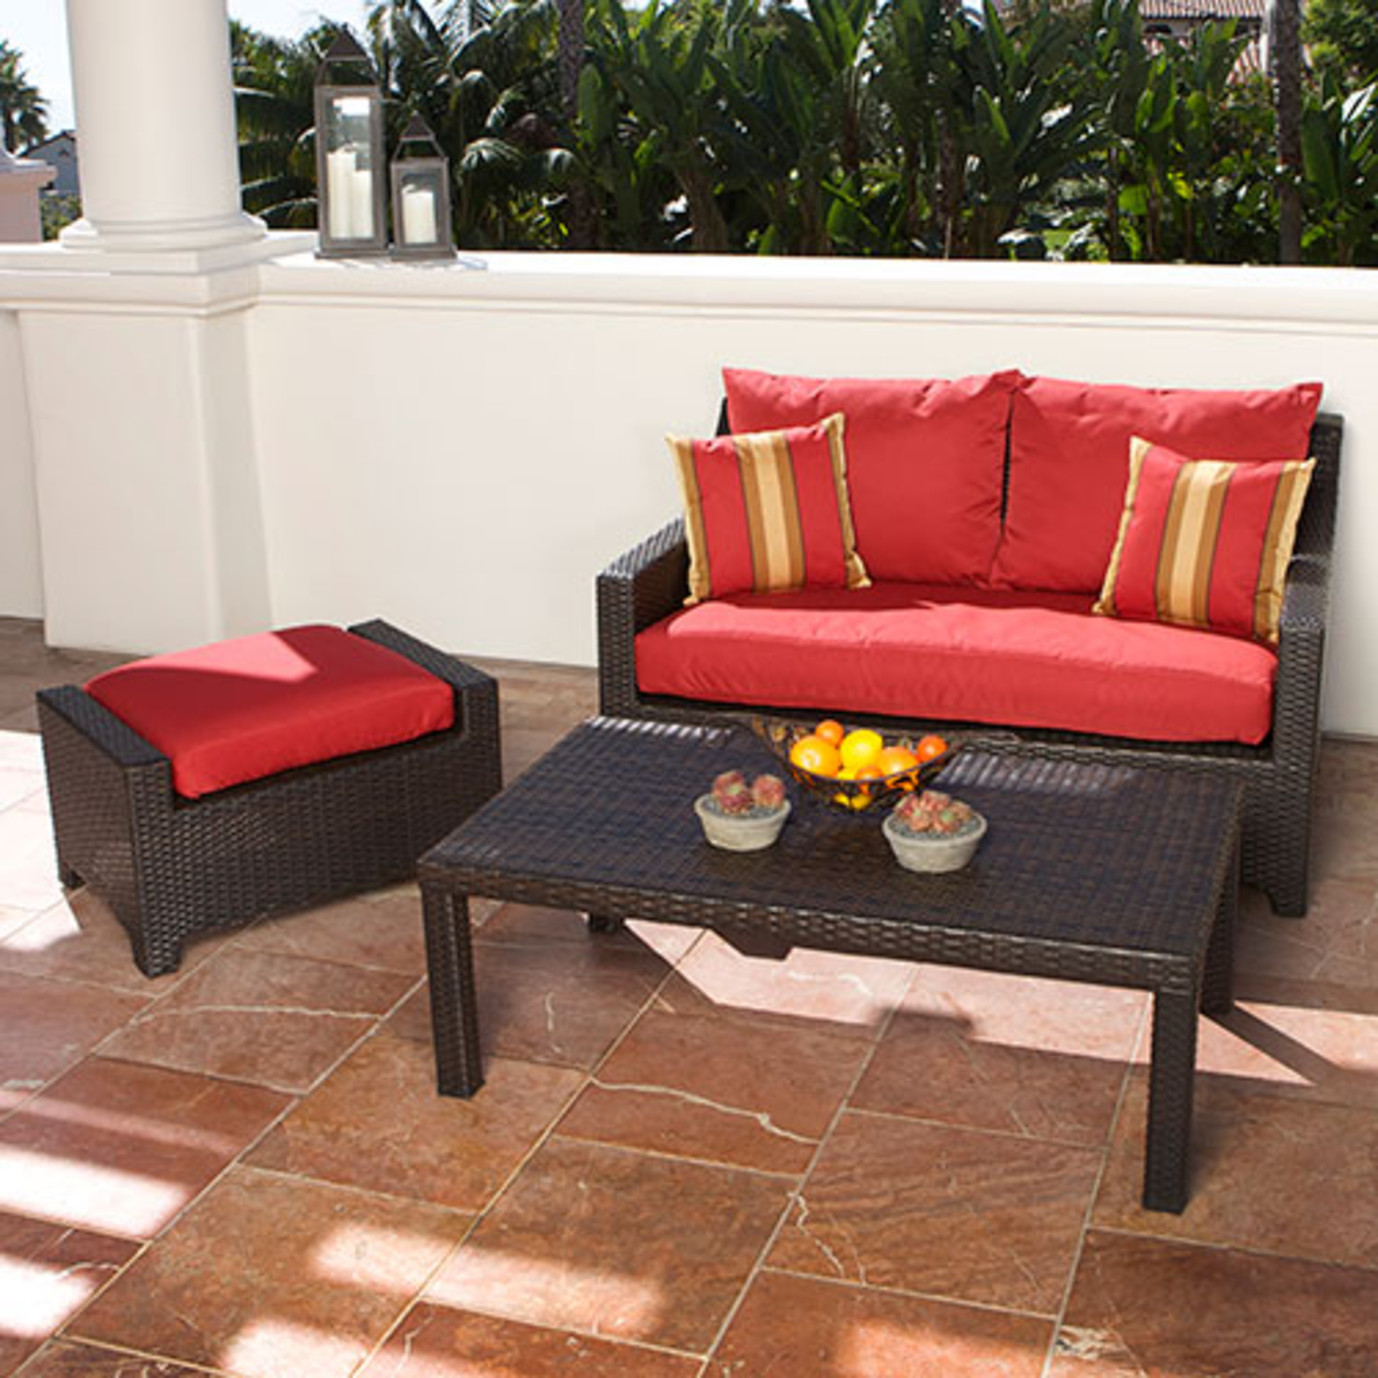 Deco Loveseat And Ottoman With Coffee Table Cantina Red Rst Brands